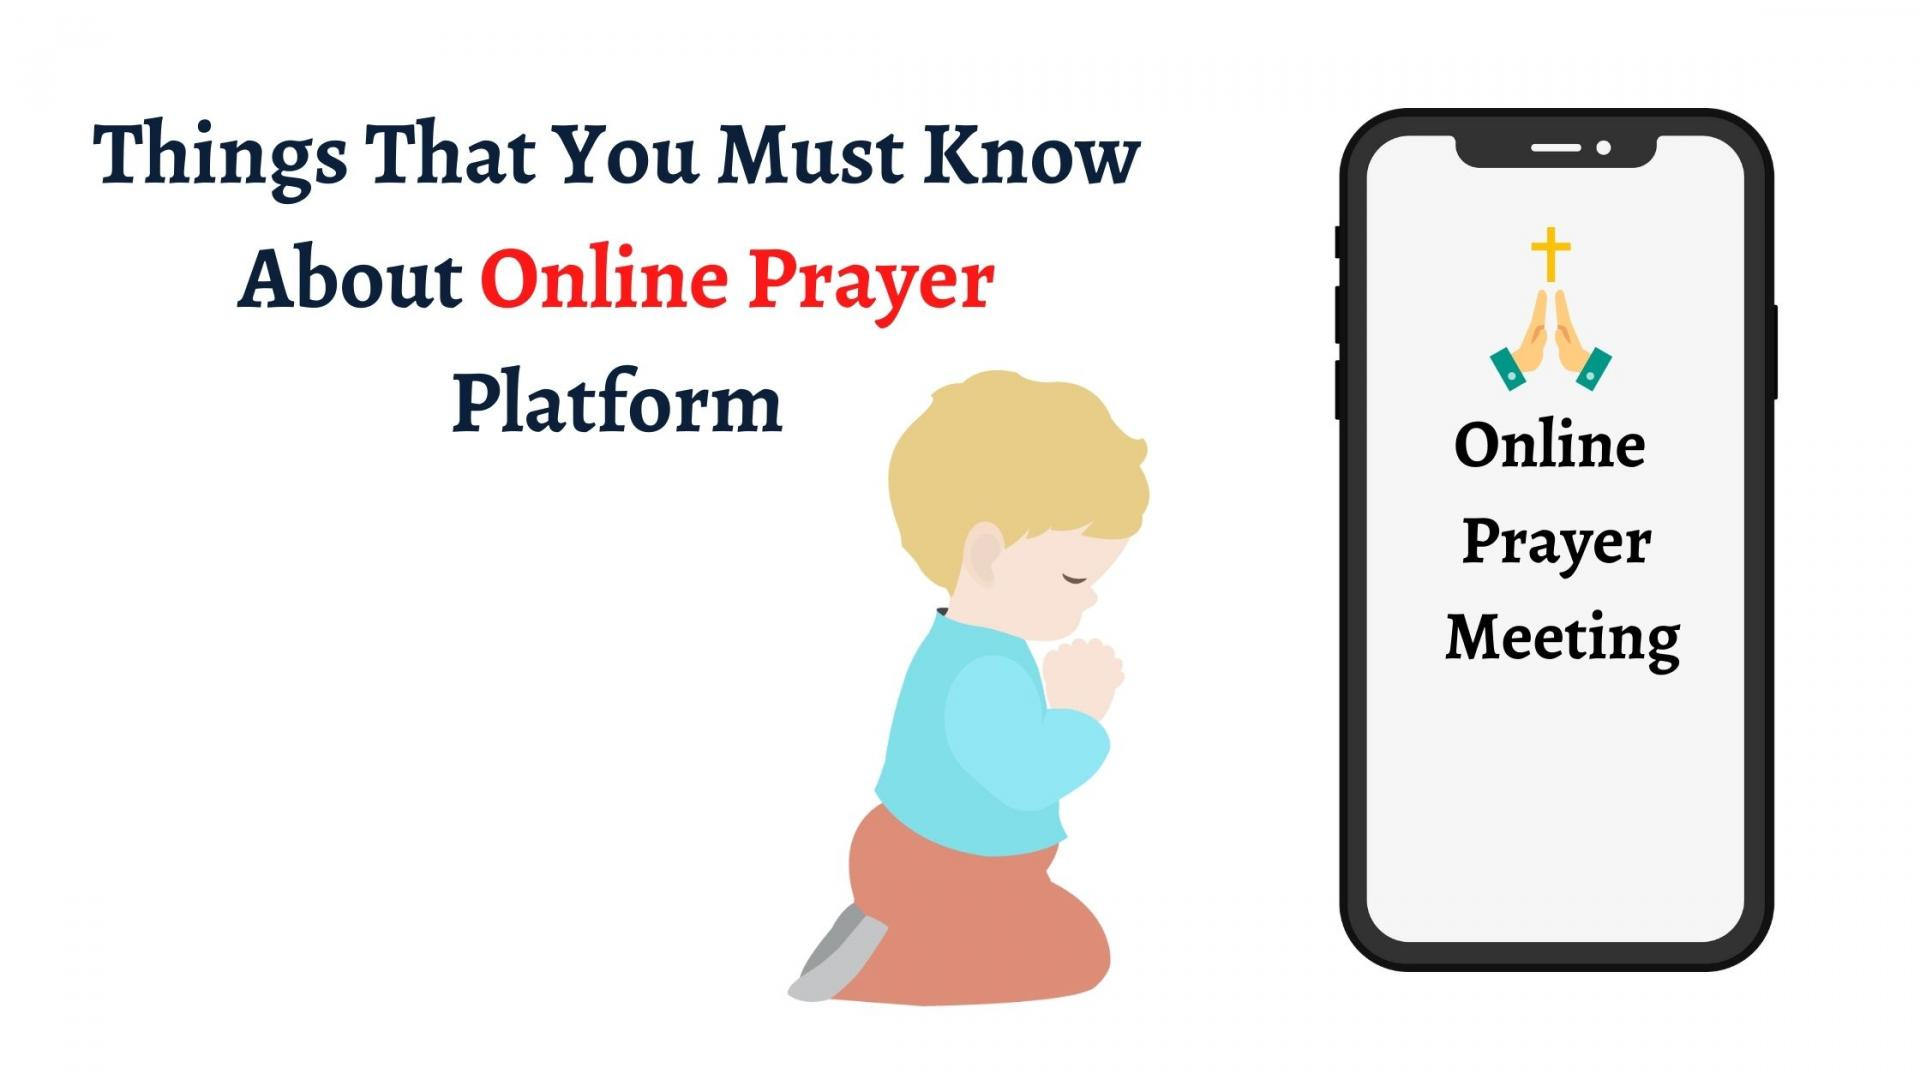 Things That You Must Know About Online Prayer Platform